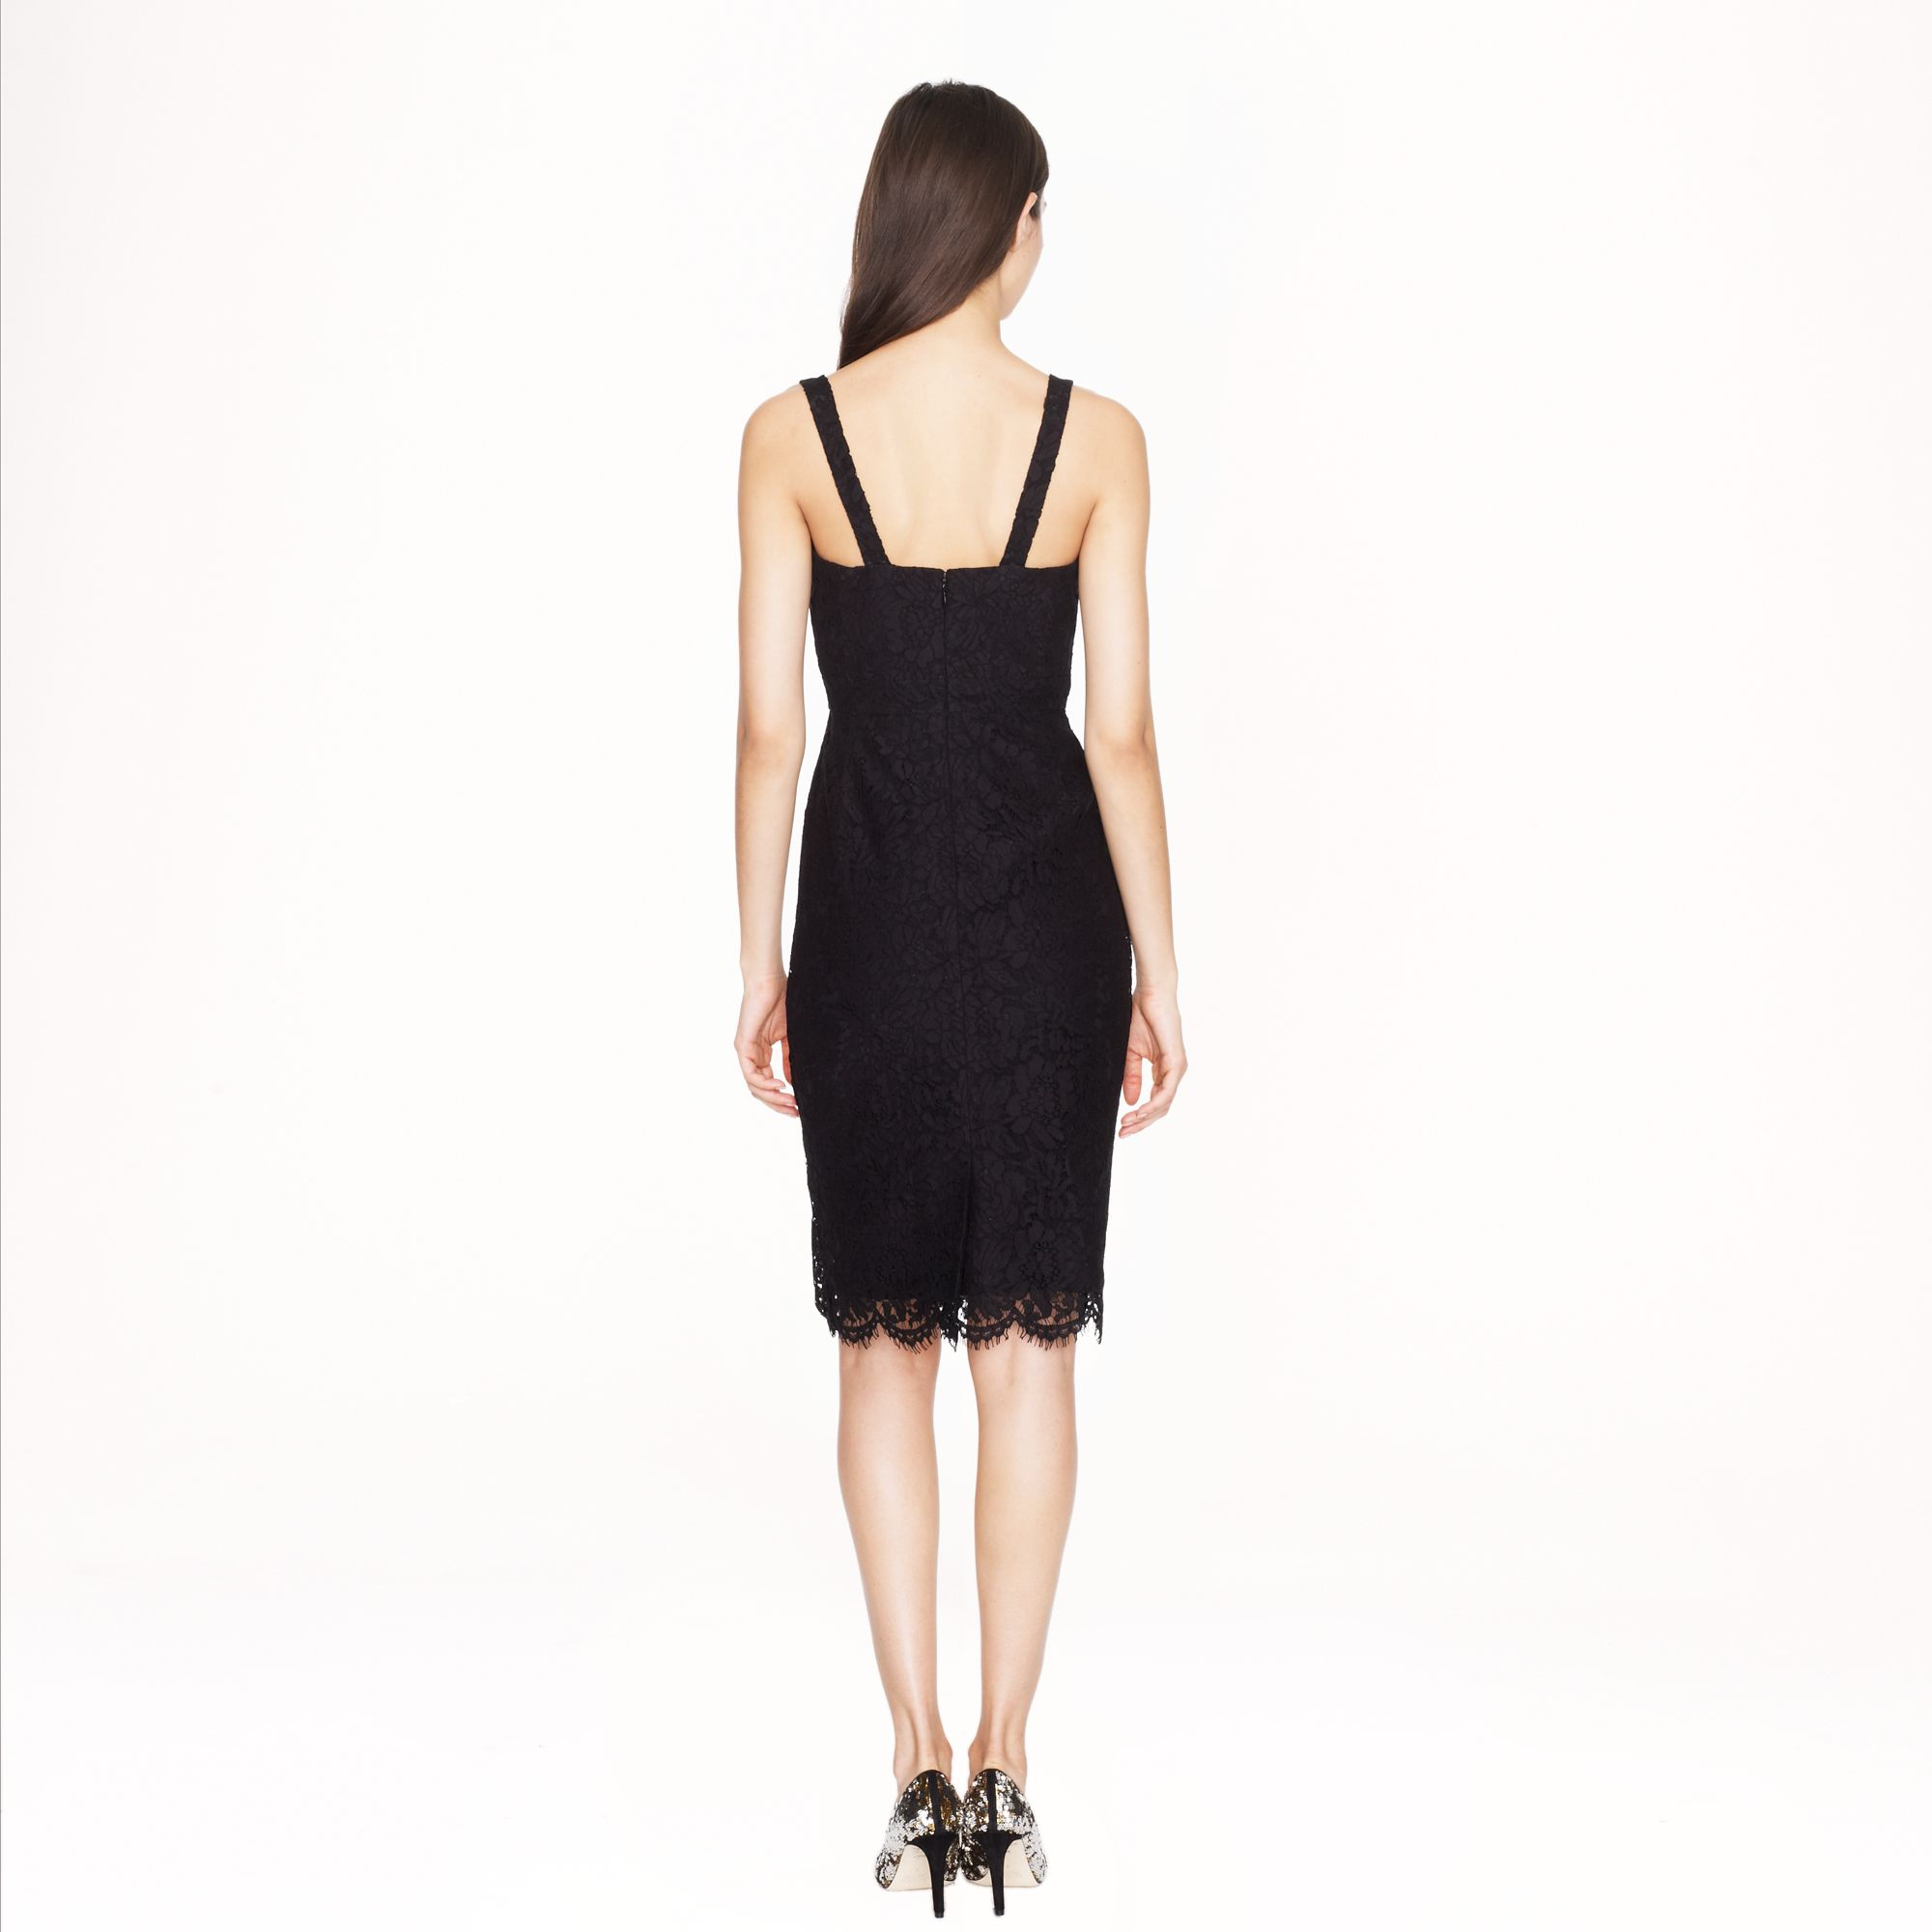 J Crew Collection Scalloped Lace Dress In Black Lyst